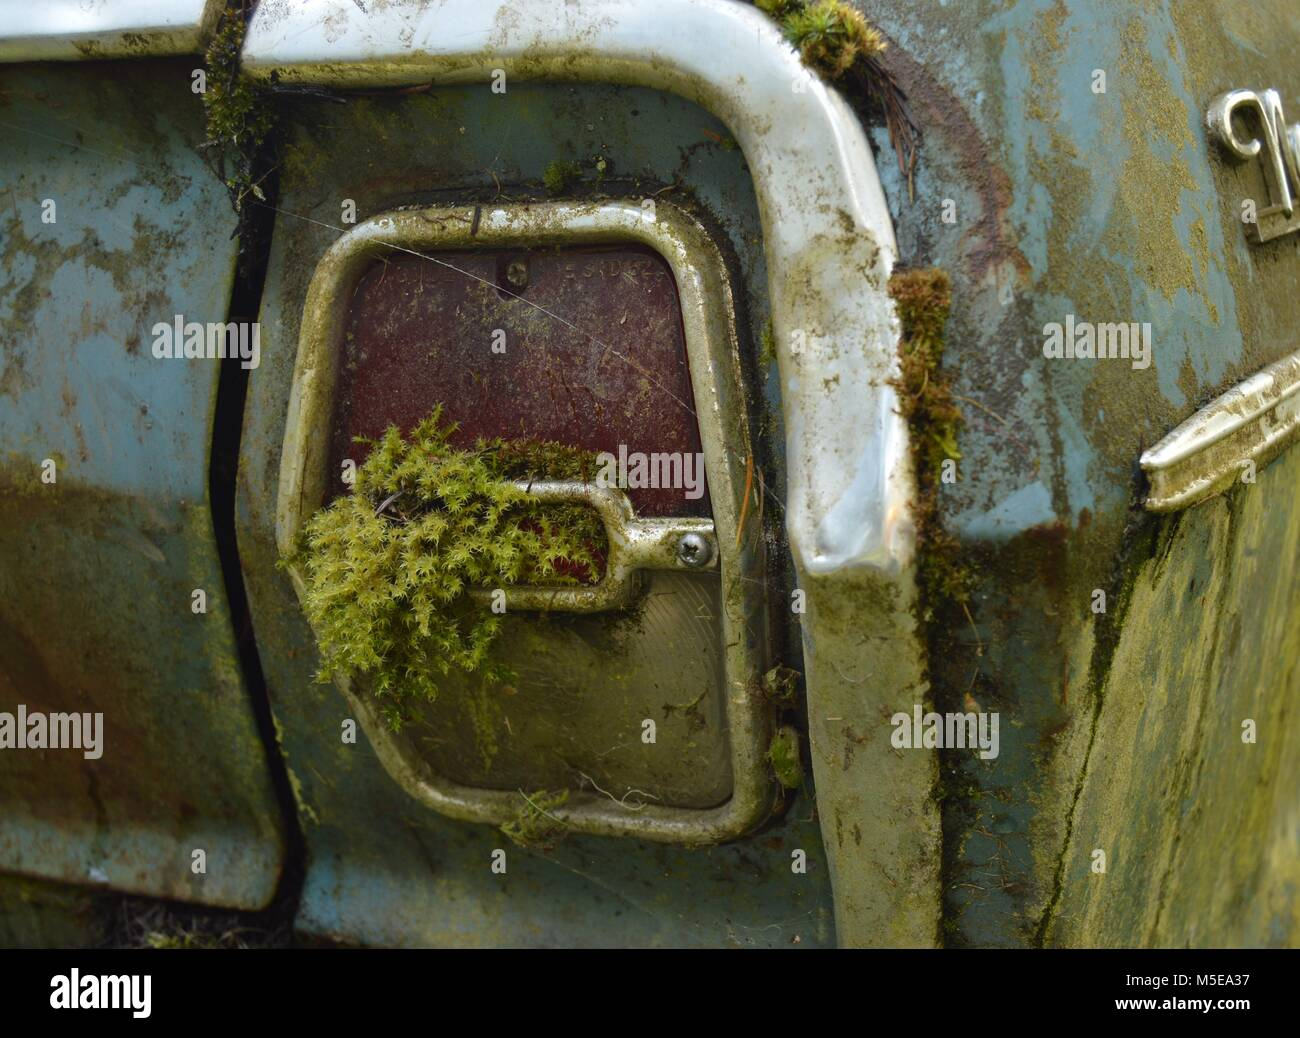 moss and lichen growing on taillight of an old abandoned car sitting in the yard Stock Photo